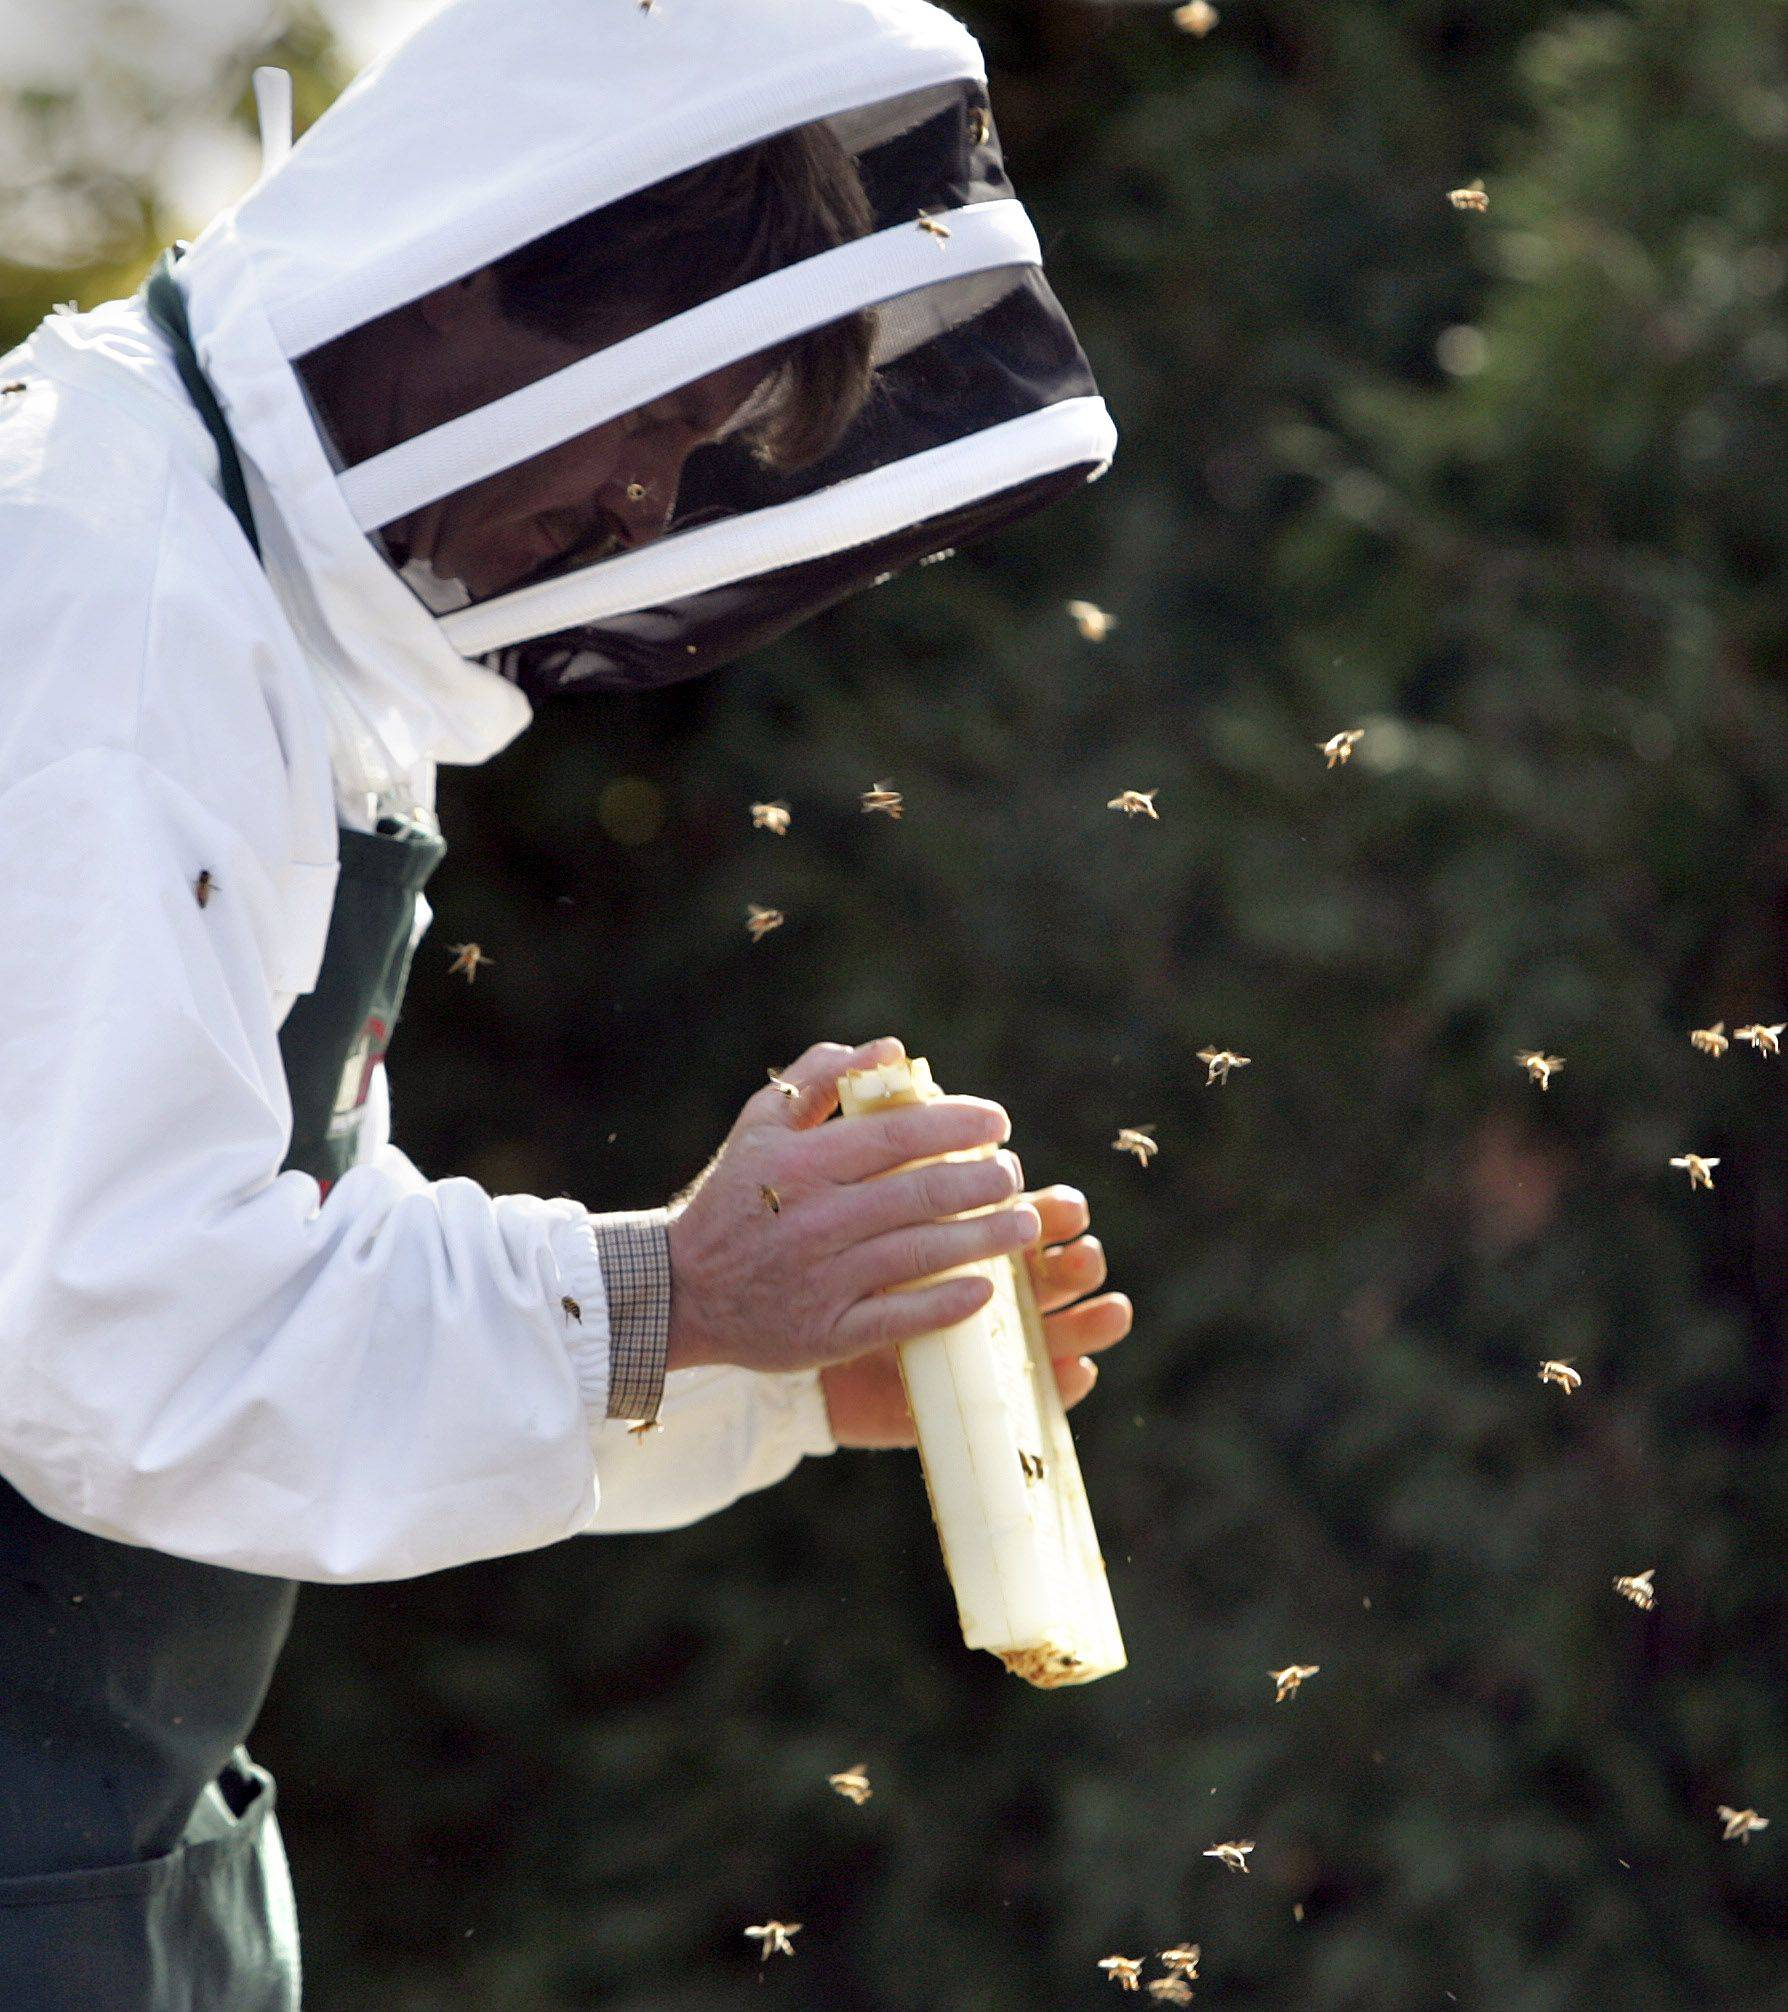 Beekeeper Greg Fischer shakes honey bees from their comb as he harvests honey from the hive at Lincolnshire Marriott Resort Monday. Executive chef Joe Plucinski started the bee hives to add locally grown honey to their menu items.